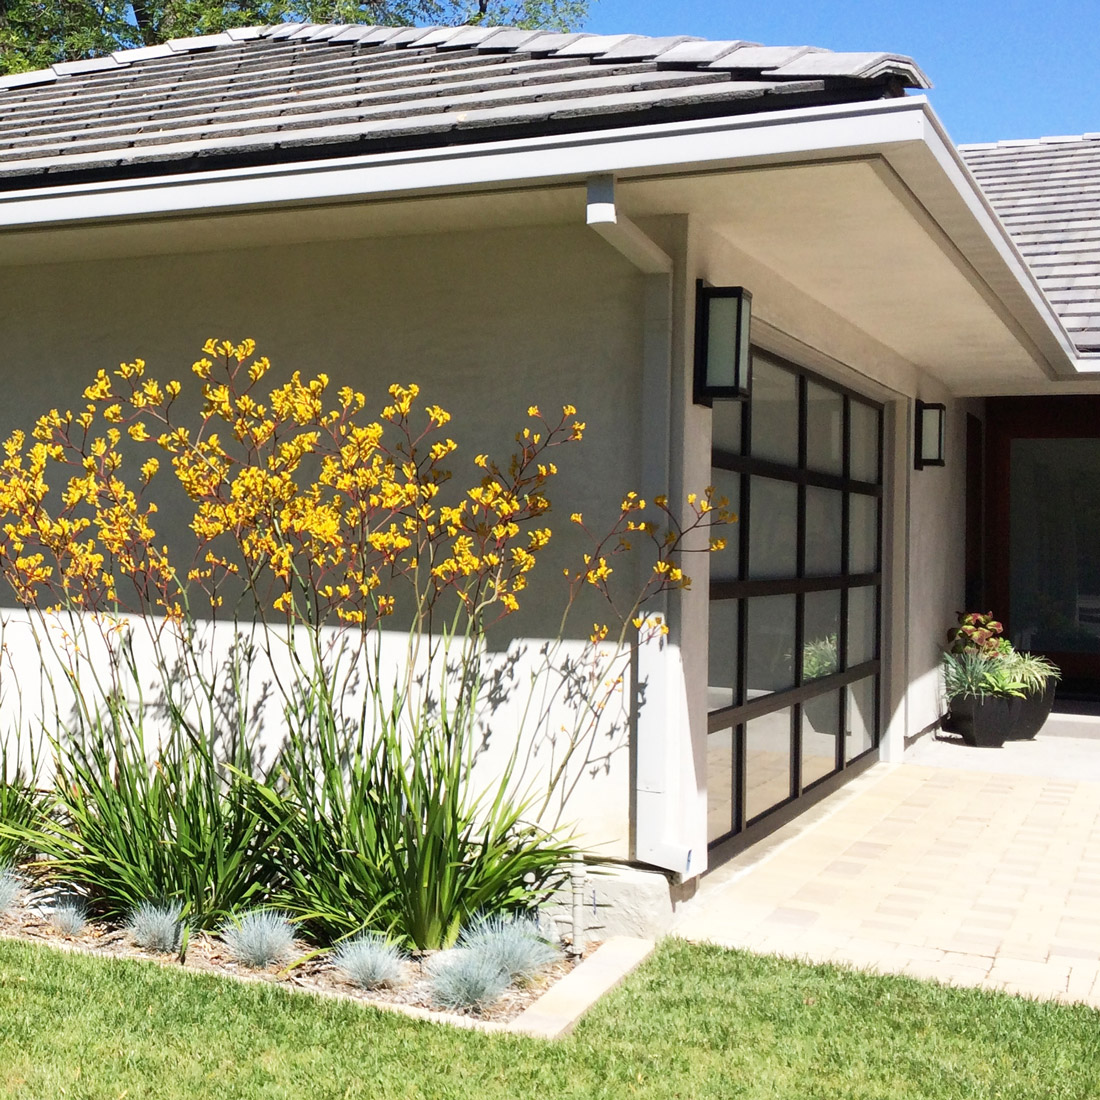 Modern Ranch Home Remodel With Smooth Grey Stucco And Modern Metal And  Glass Garage Door And